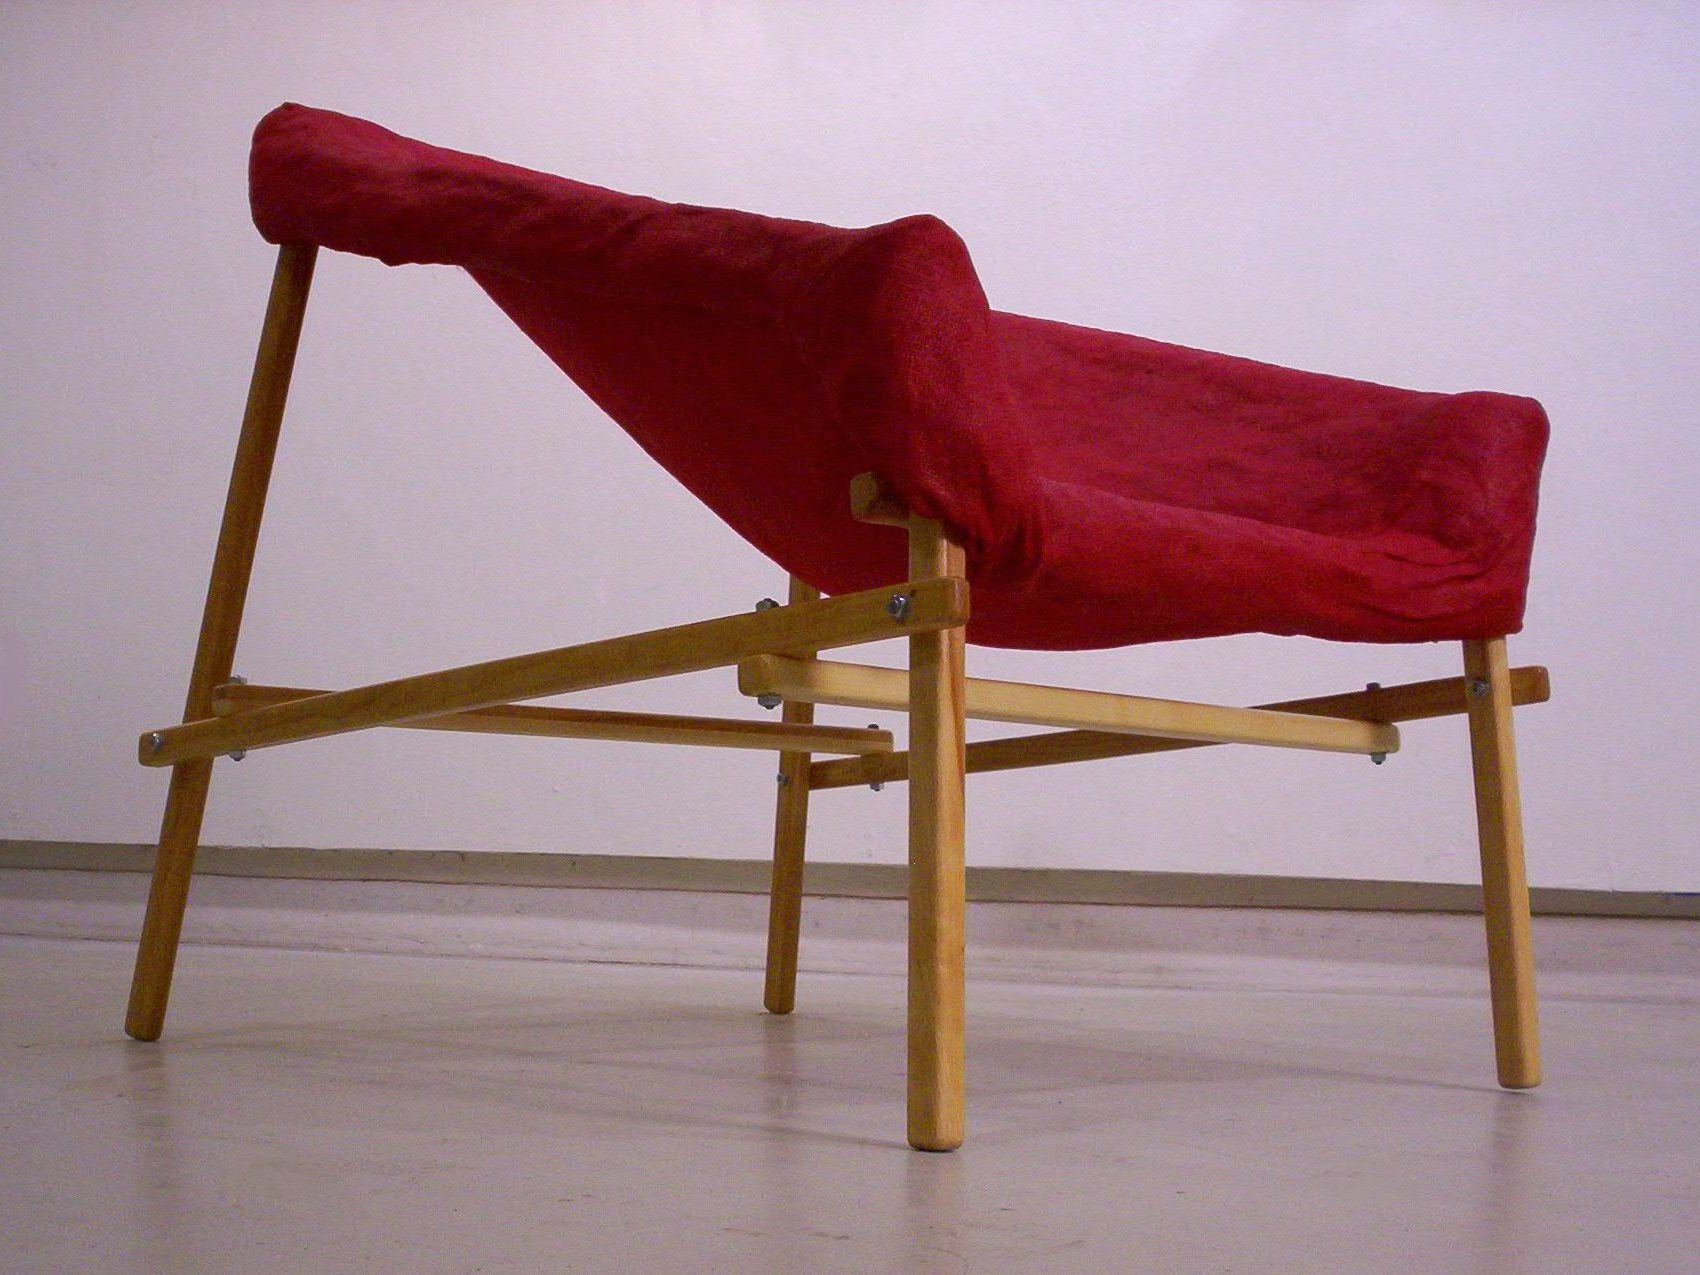 Process: Design and construct affordable, expressive and non-toxic furniture.